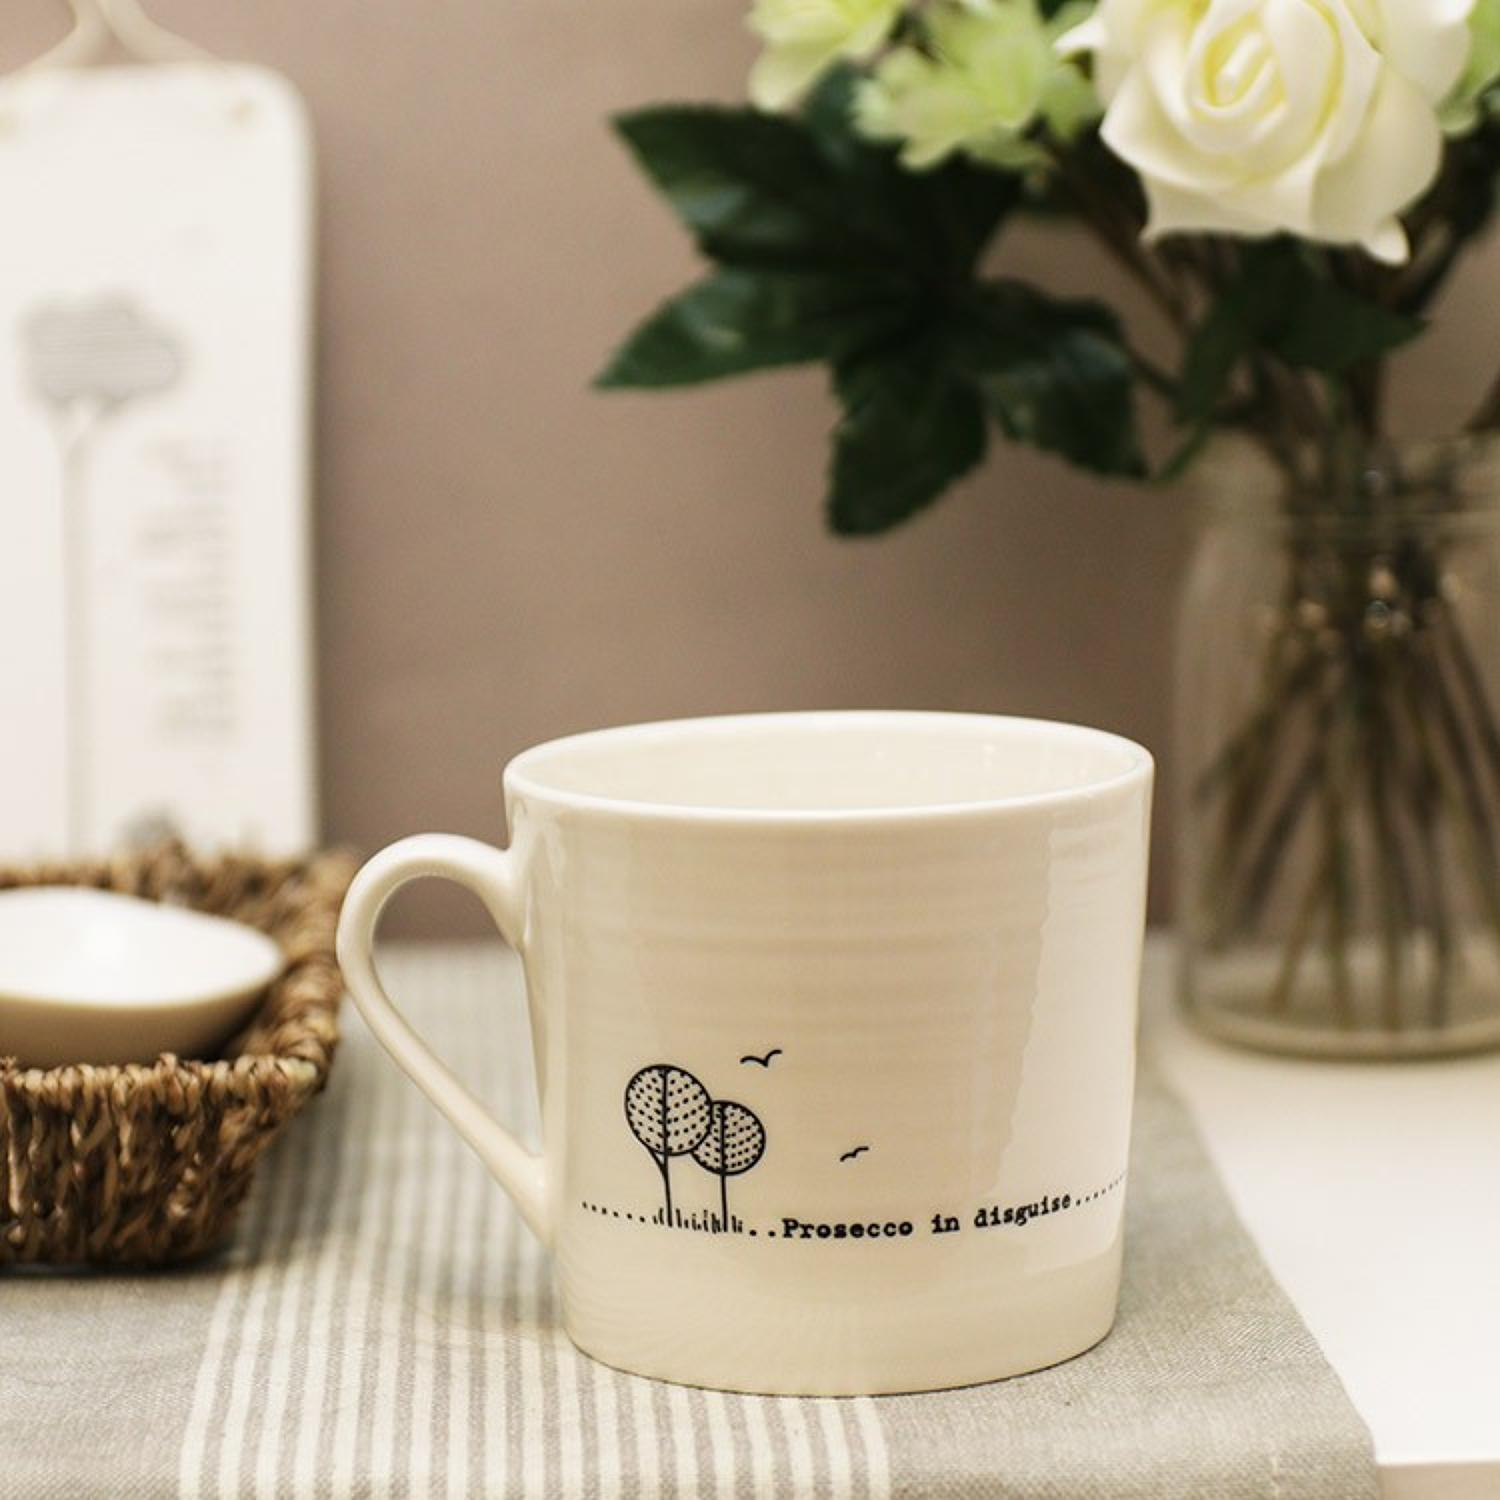 East of India - Boxed porcelain wobbly mugs - prosecco in disguise